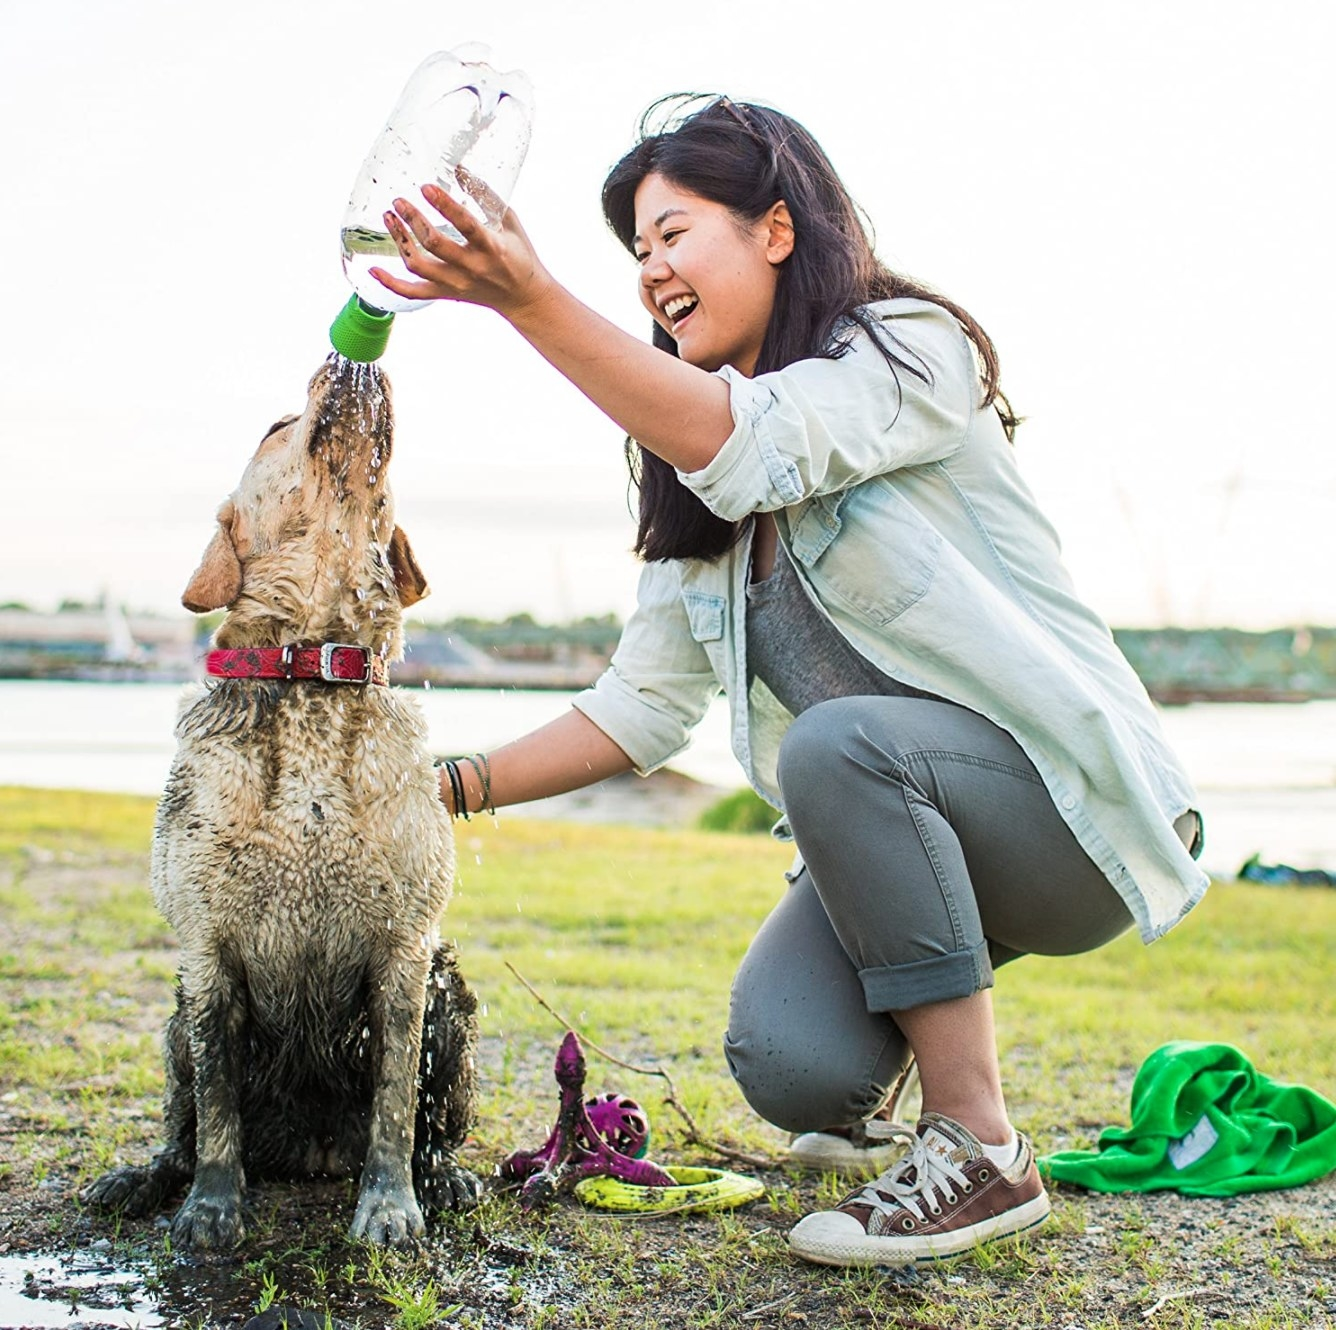 A reviewer bathing their muddy dog with the clear outdoor shower grooming tool